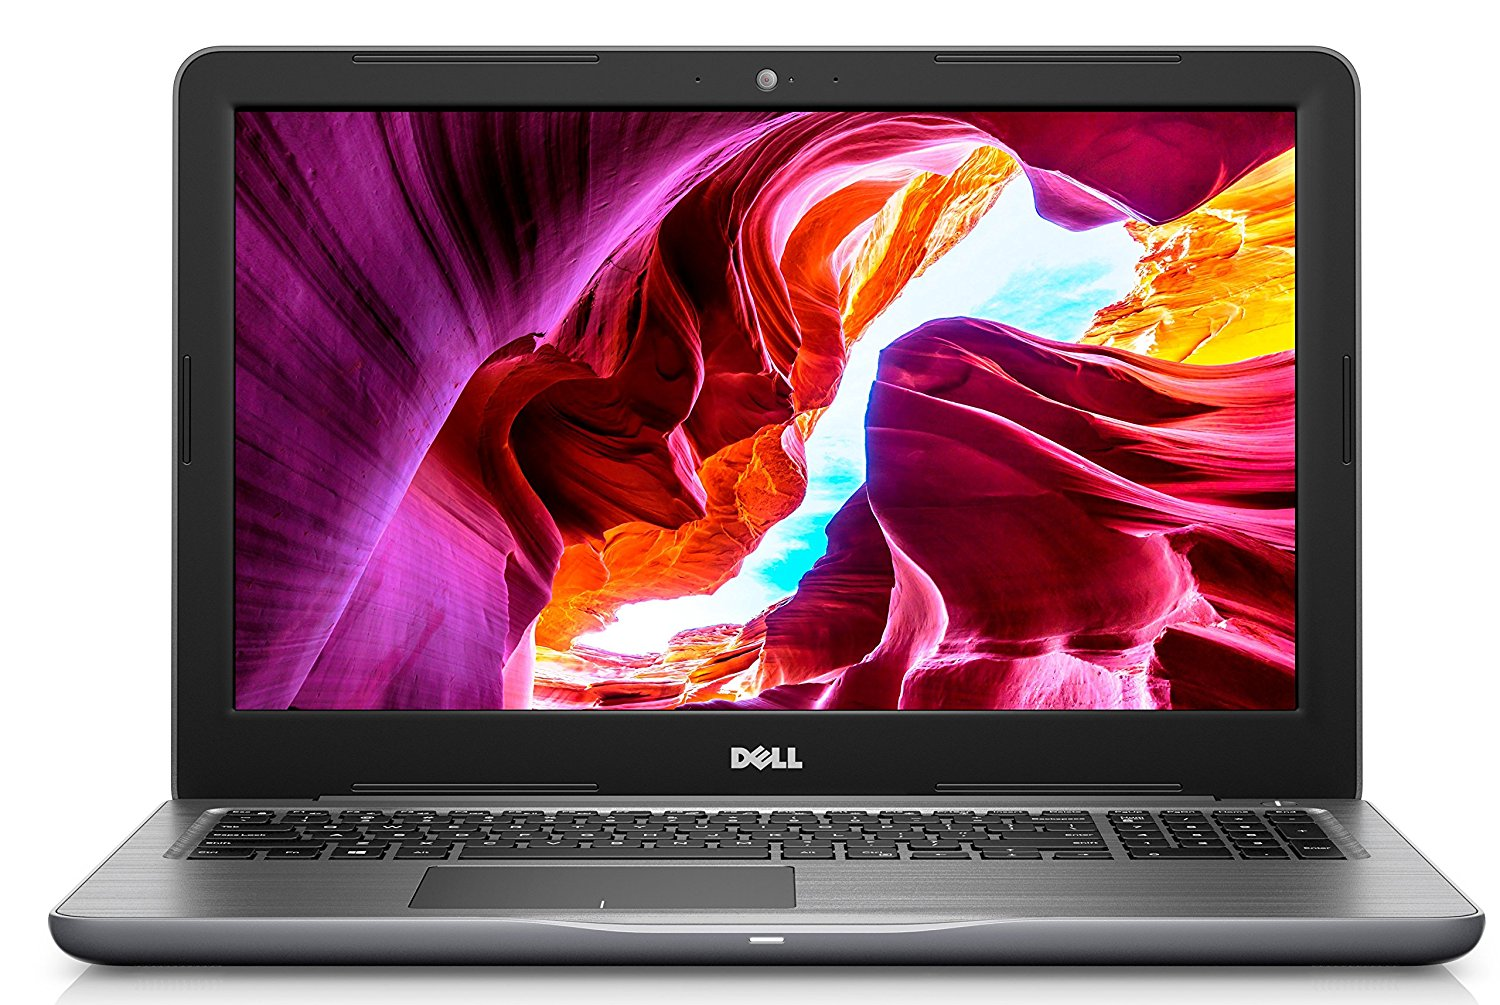 Top 20 Cheap Laptop Deals In September 2017 Iblogiblog Lcd Led 140 Inc Lenovo Ideapad G40 30 70 80 Dell Inspiron 15 5000 If The 7000 Series Is A Bit Much See Best Prices Further Down This Page Then Why Not Save Yourself 200 Today On Still